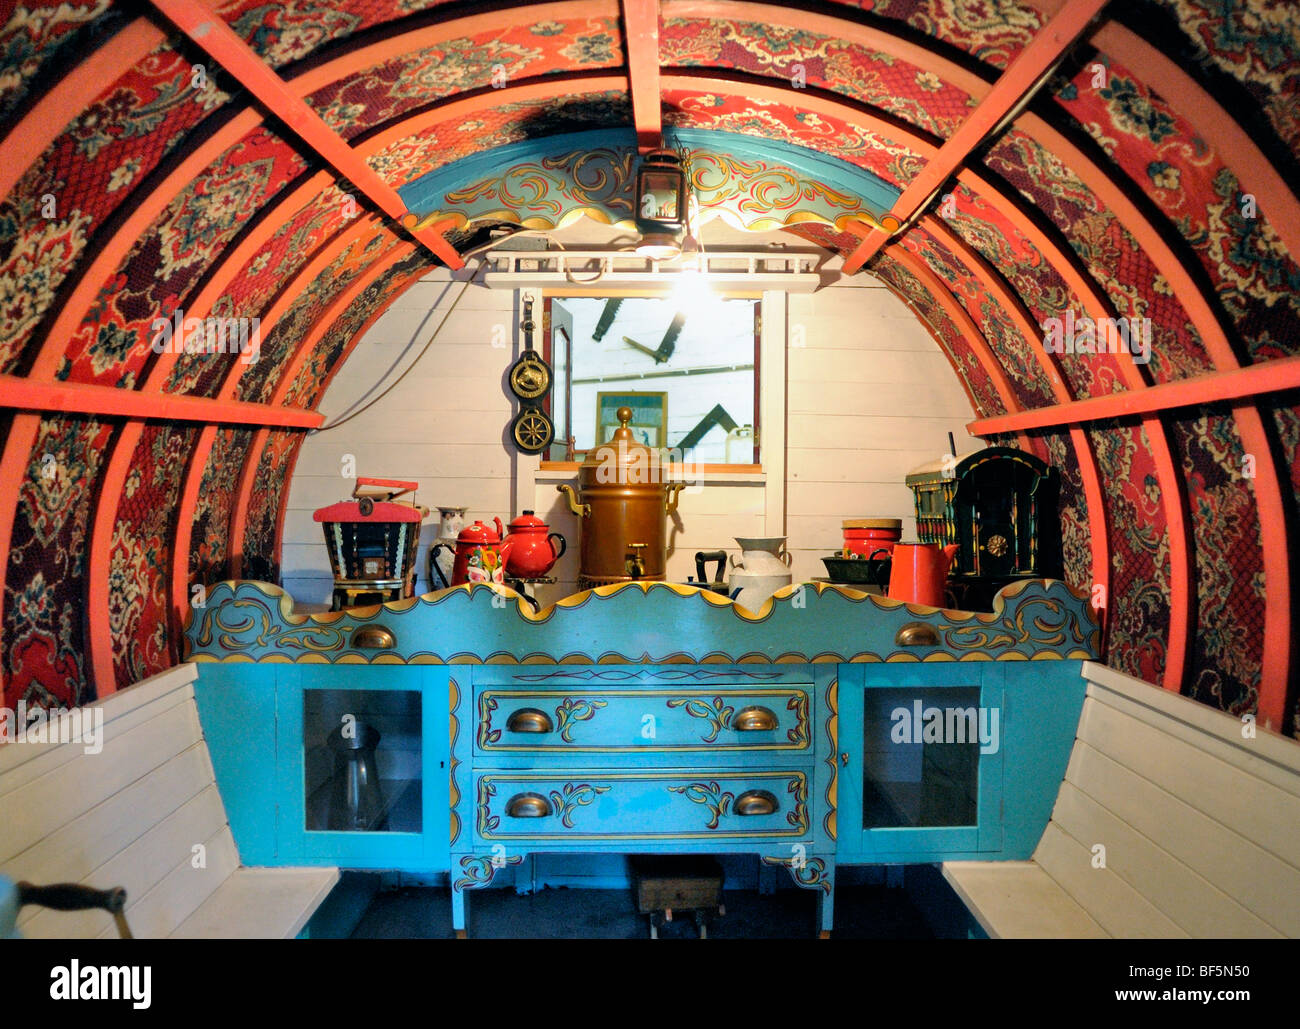 The inside of a restored old Gypsy caravan - Stock Image